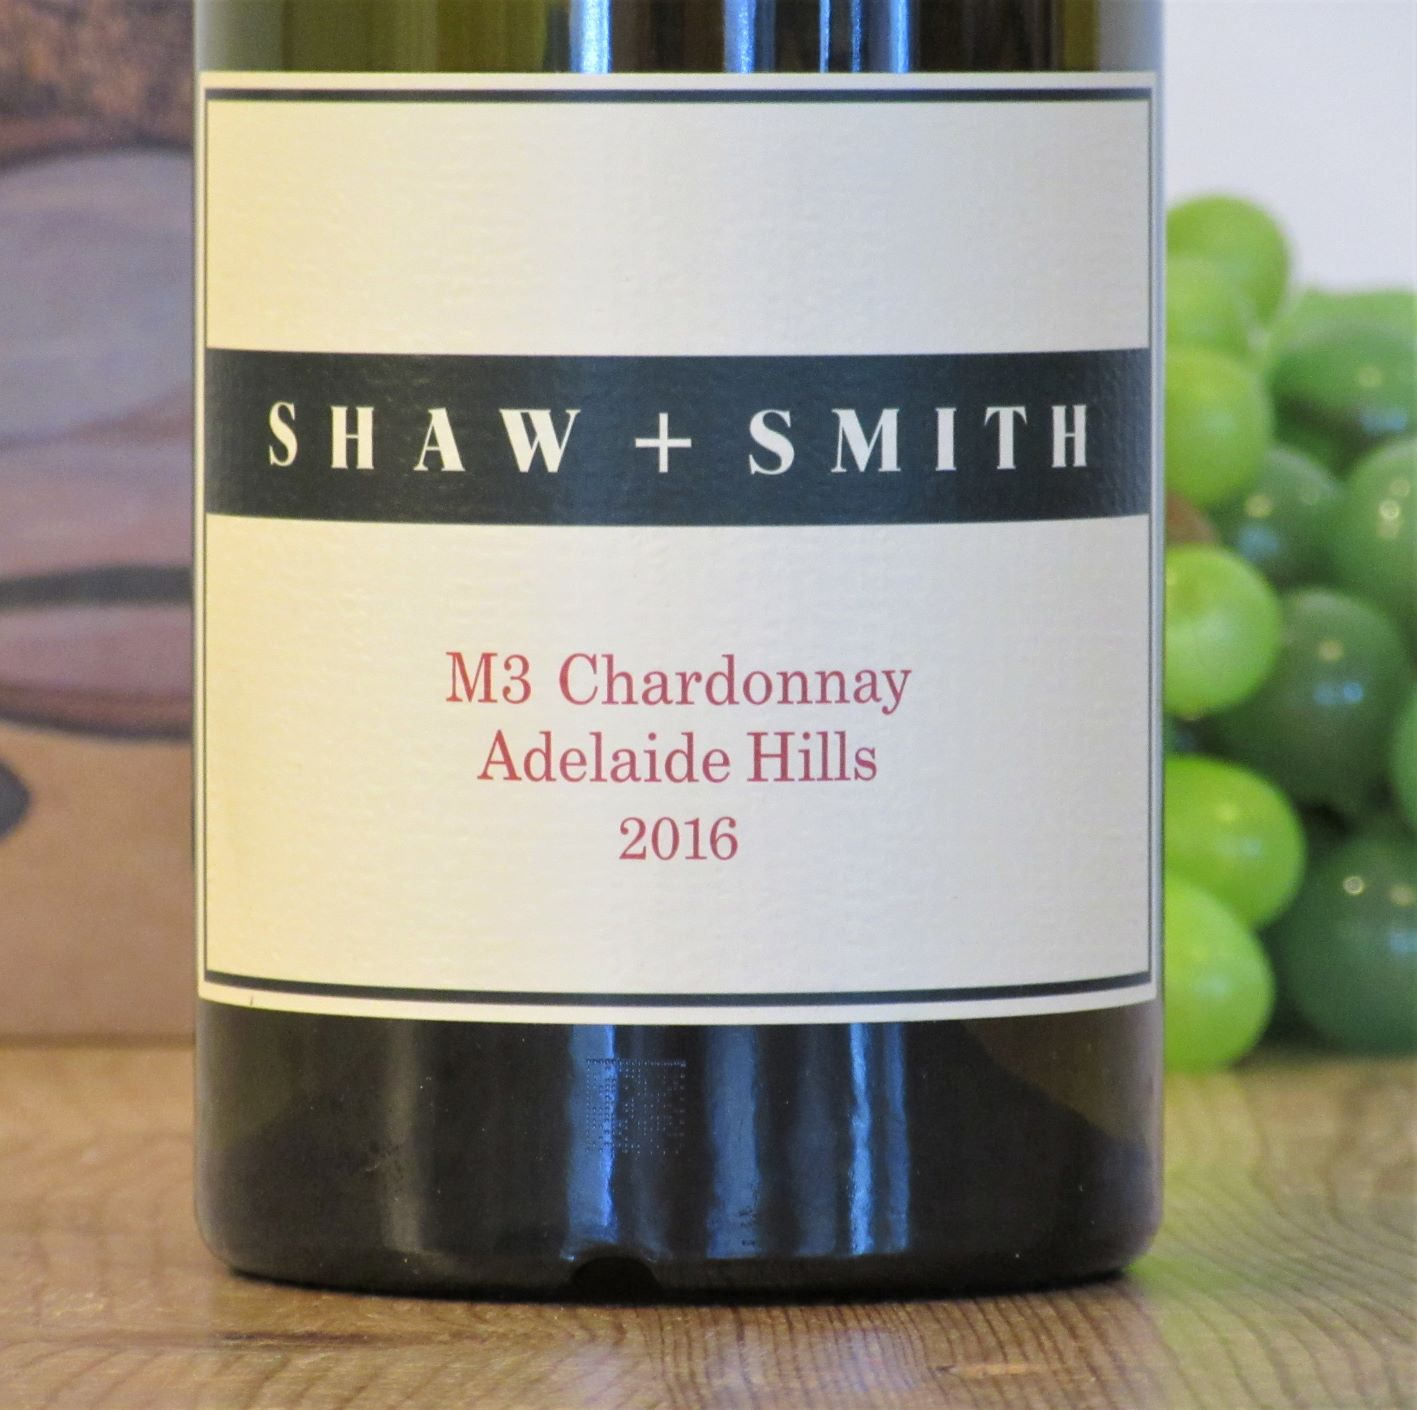 Shaw & Smith M3 Chardonnay 2016